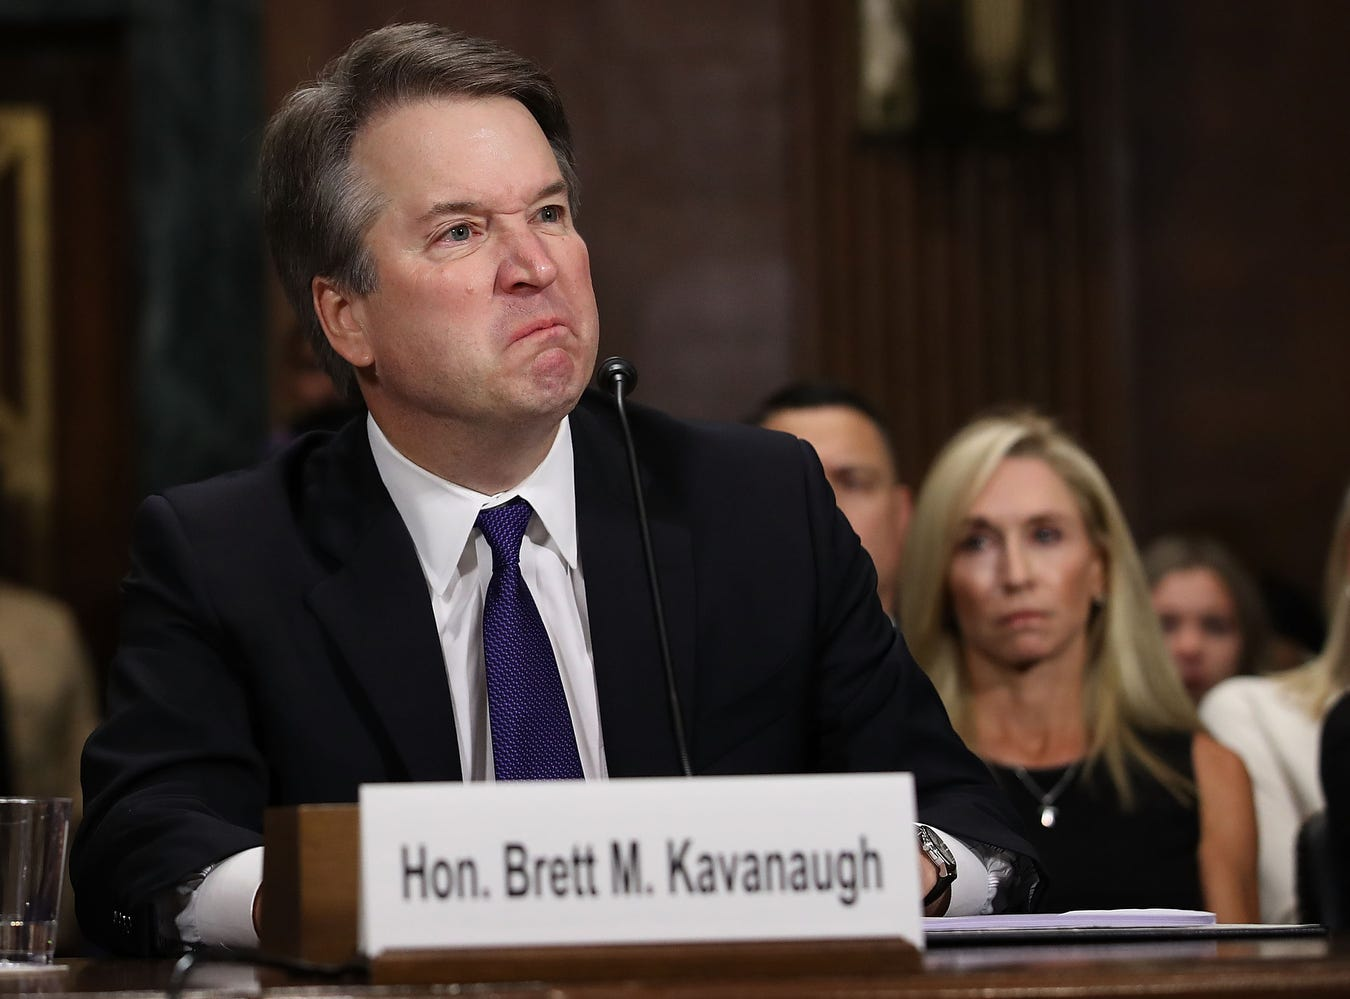 Judge Brett Kavanaugh stridently rejected the allegations of sexual abuse by Christine Blasey Ford and two other women in prepared remarks.